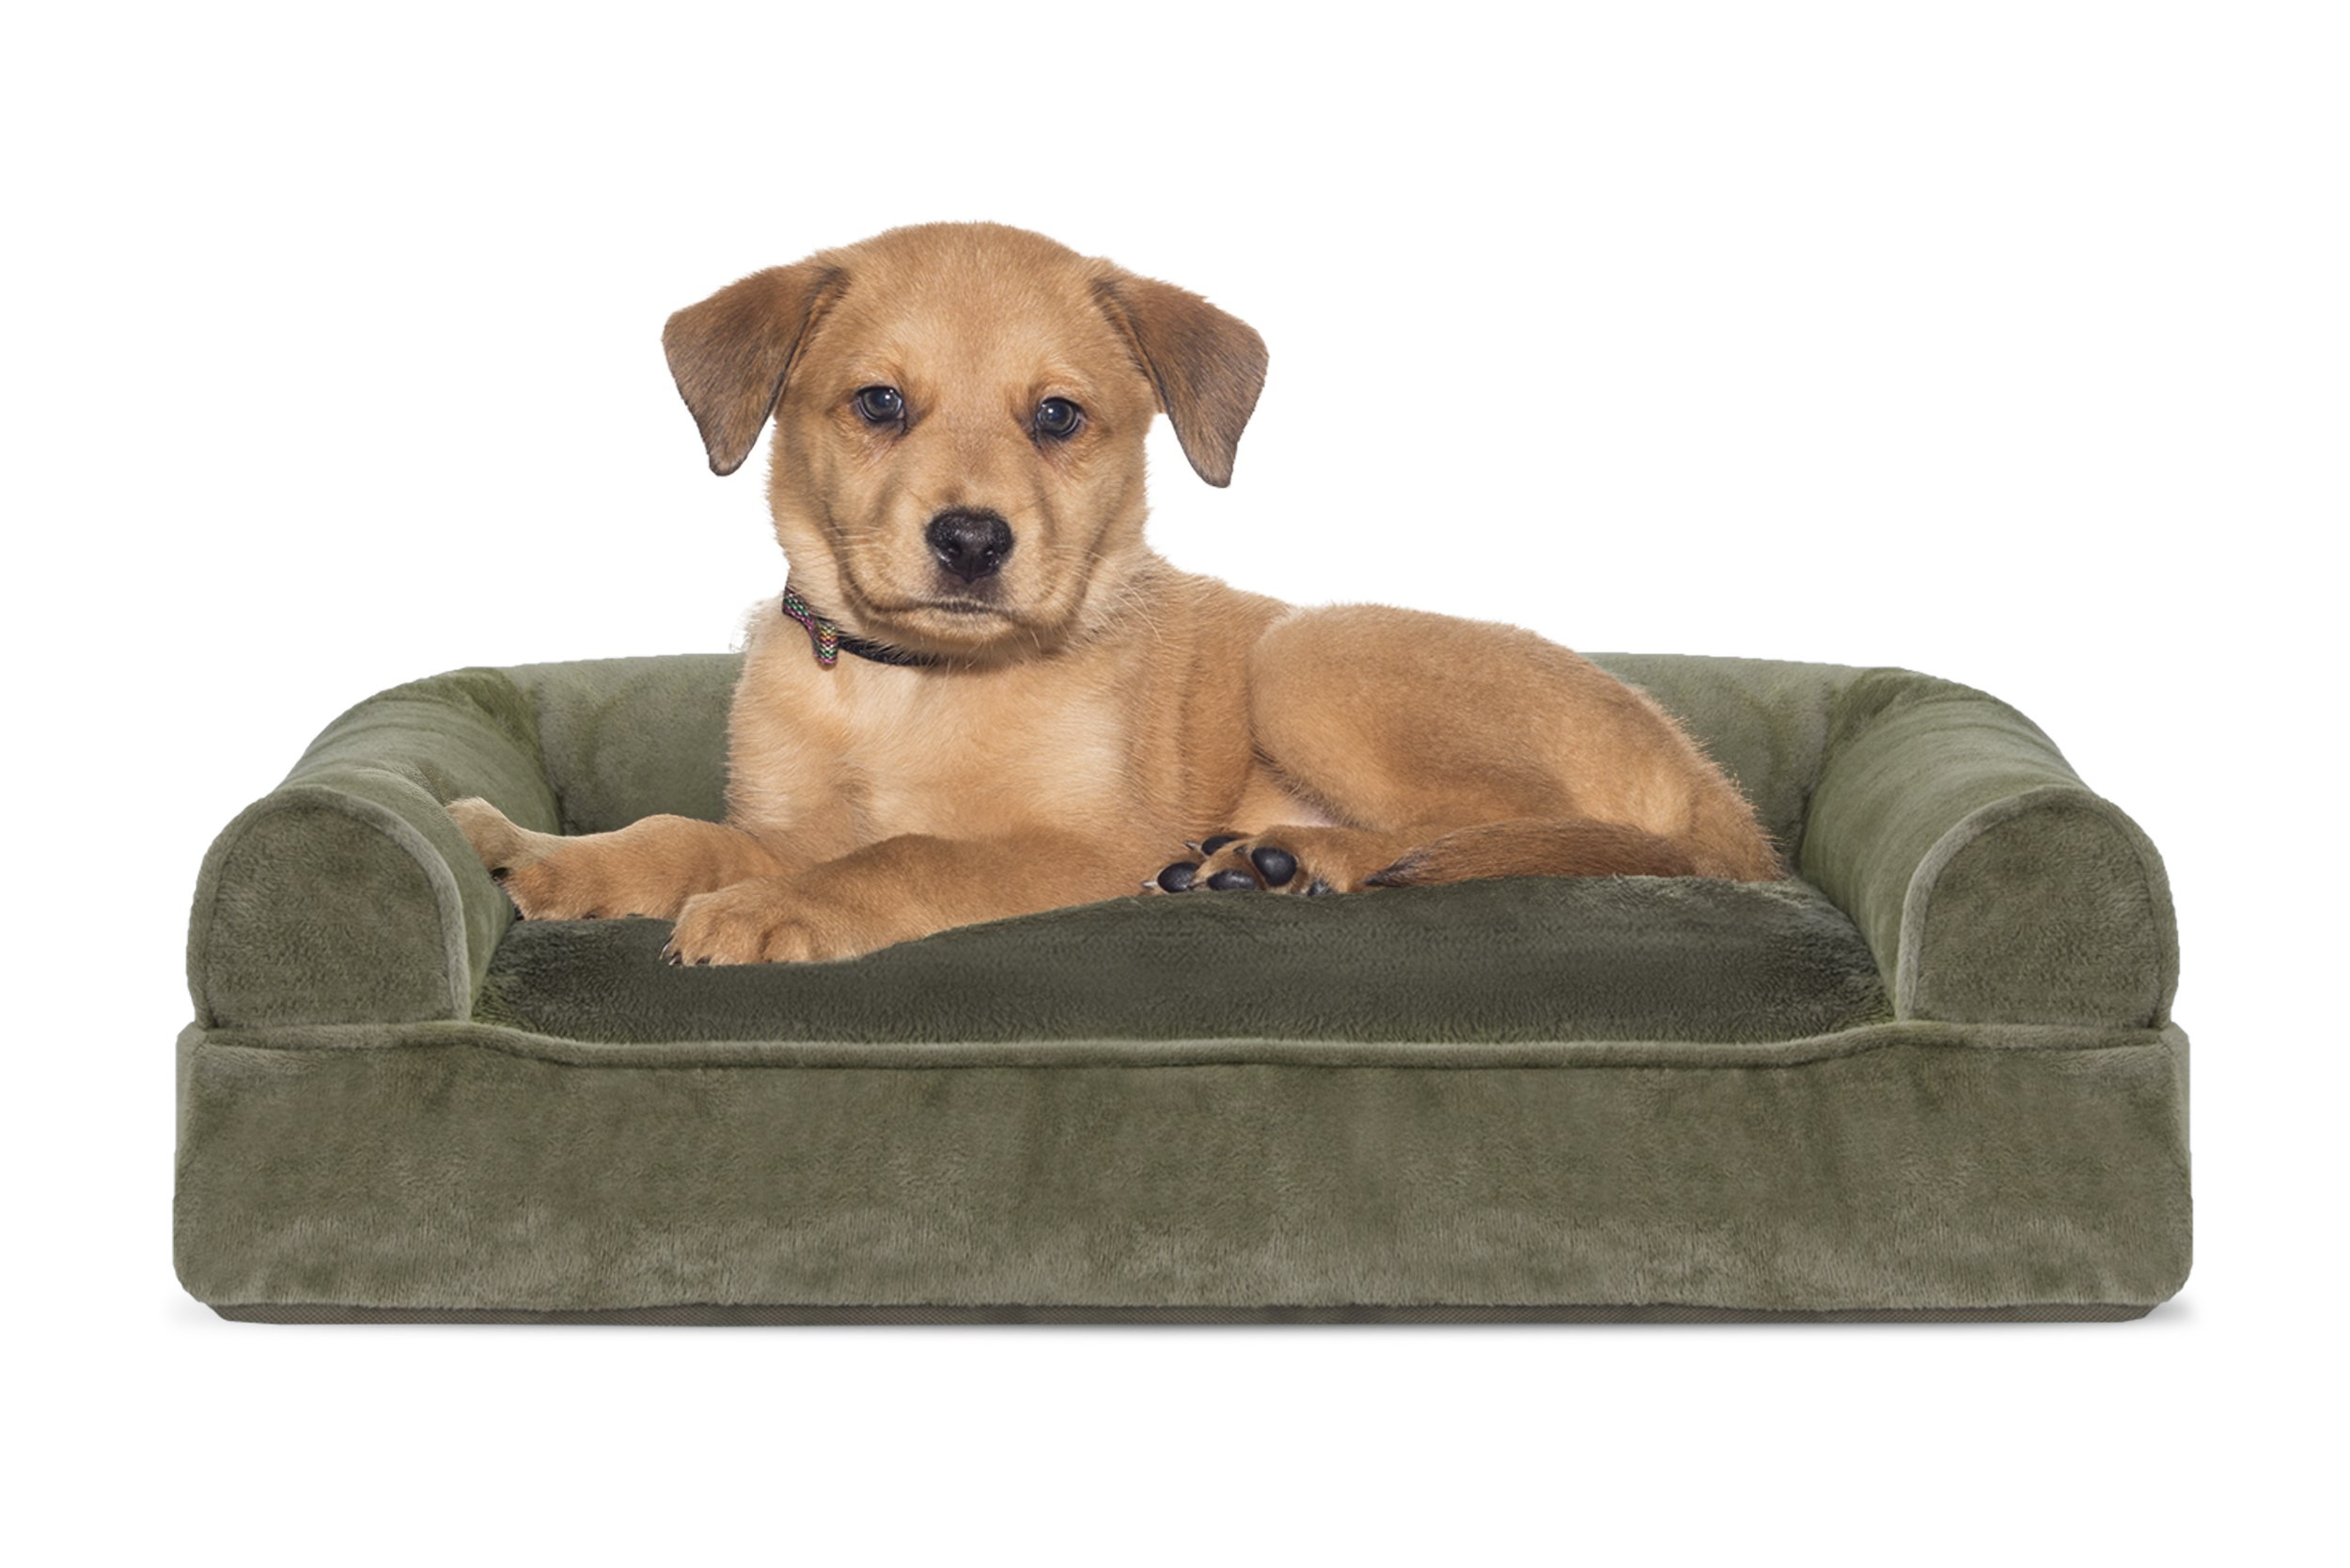 Furhaven Pet Dog Bed   Faux Fur & Velvet Pillow Sofa-Style Couch Pet Bed for Dogs & Cats, Dark Sage, Small